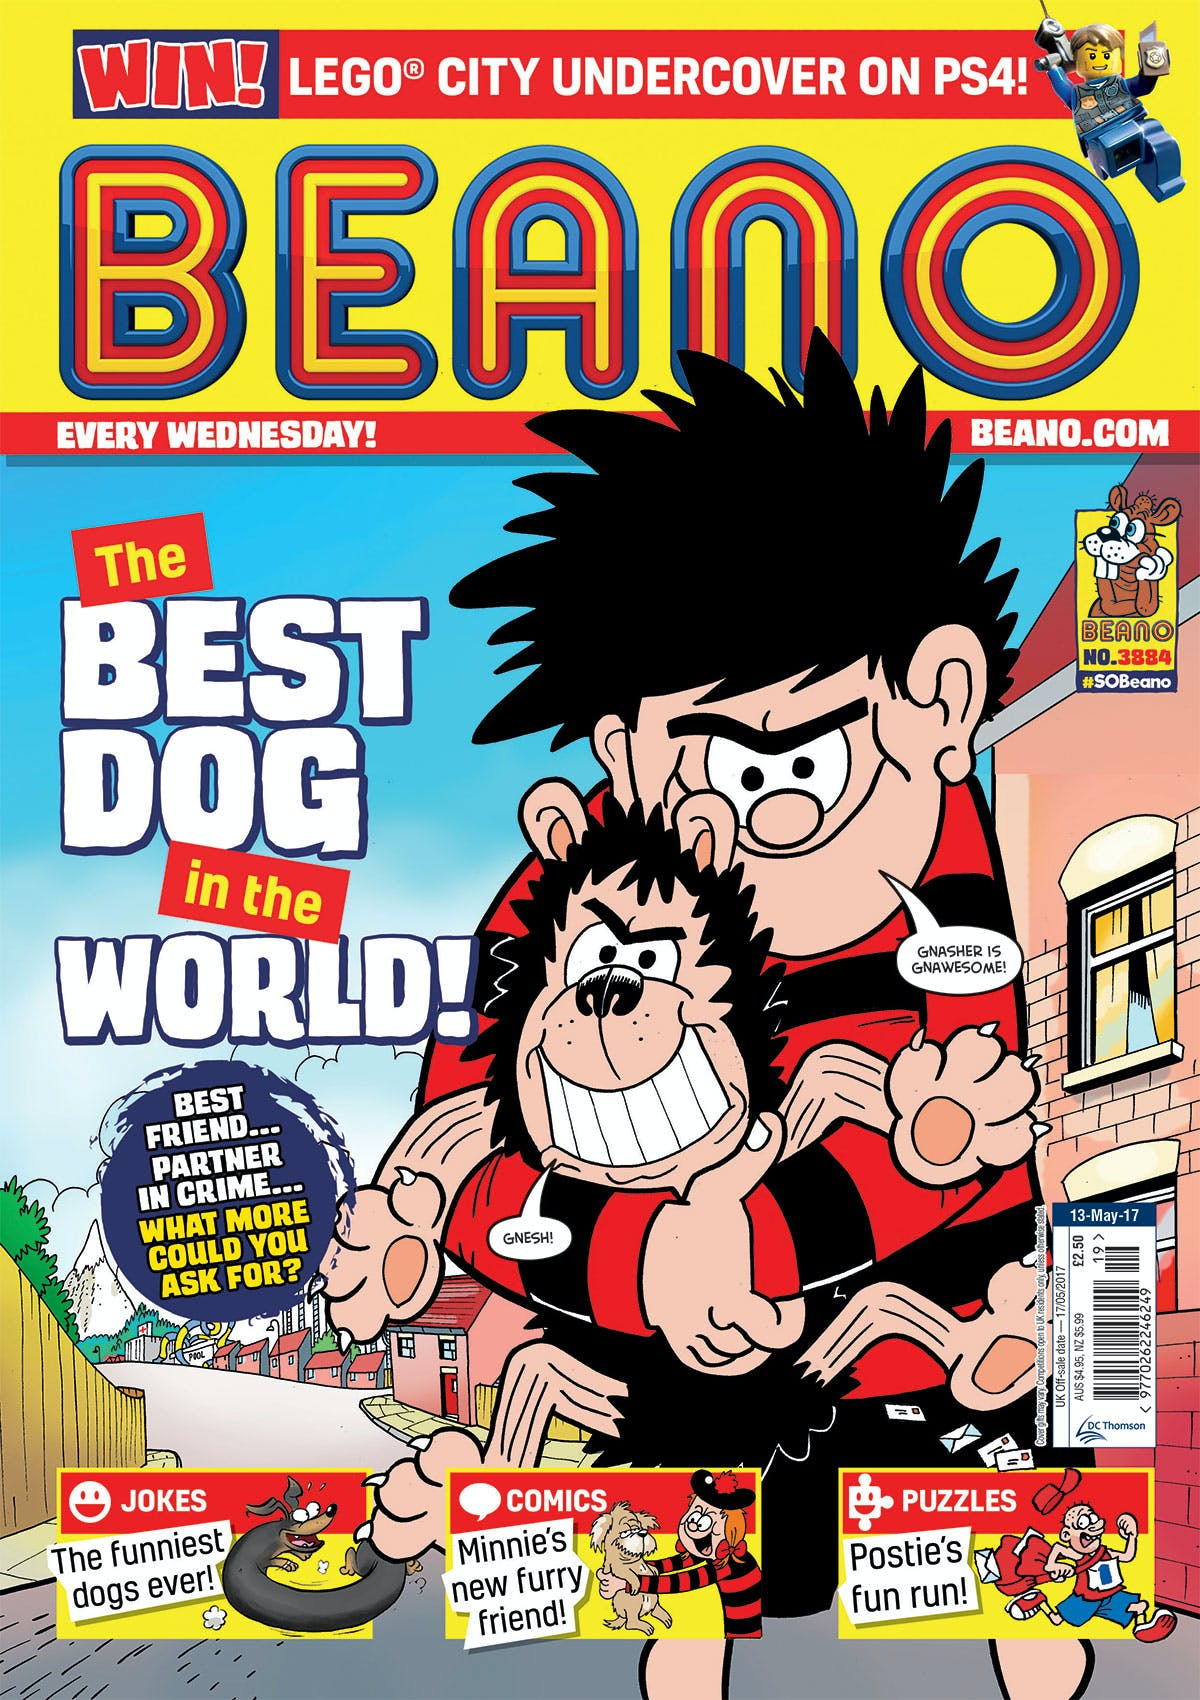 Beano 13th May 2017 cover